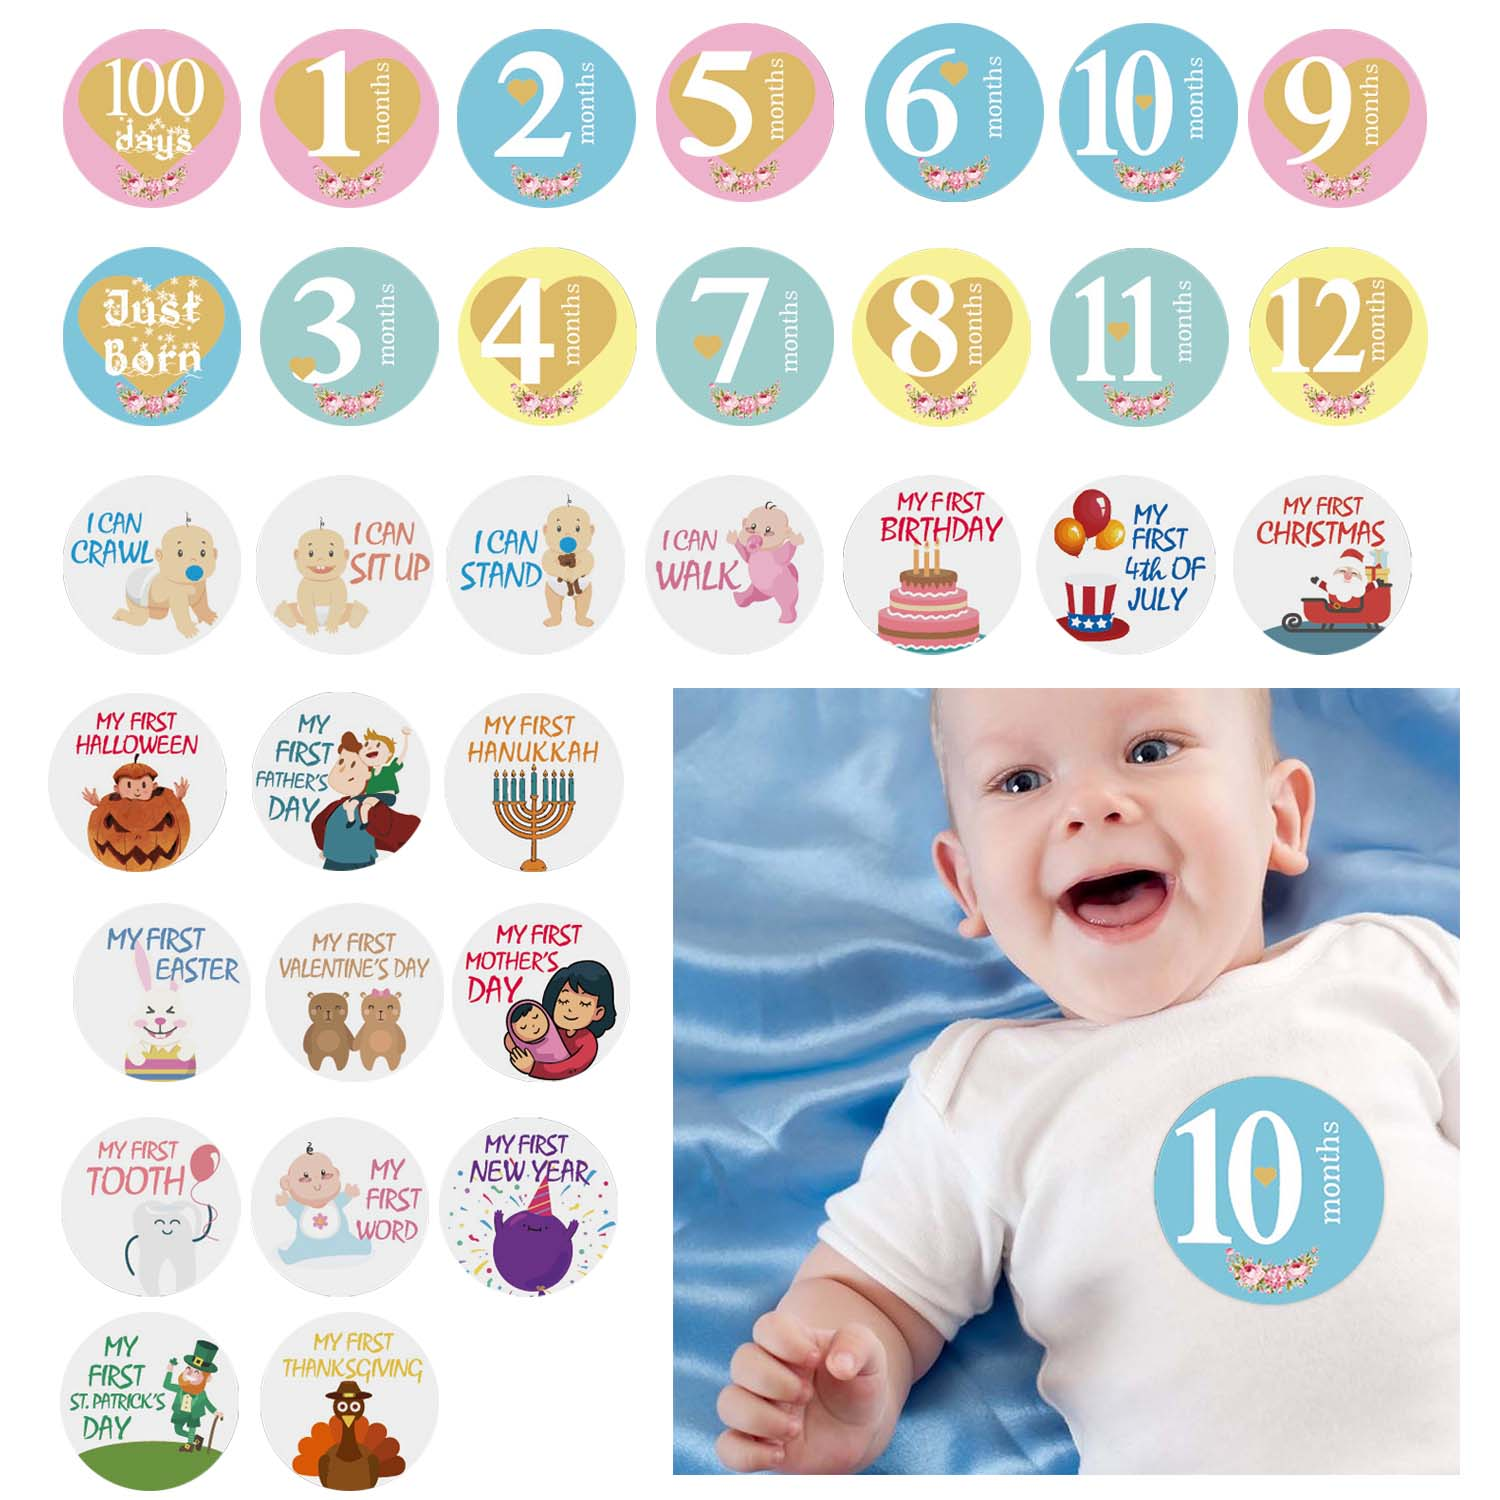 32PCS Baby Monthly Milestone Stickers Infants 1-12 Months Growth Record Photograph Stickers DIY Commemorative Photo Booth Props